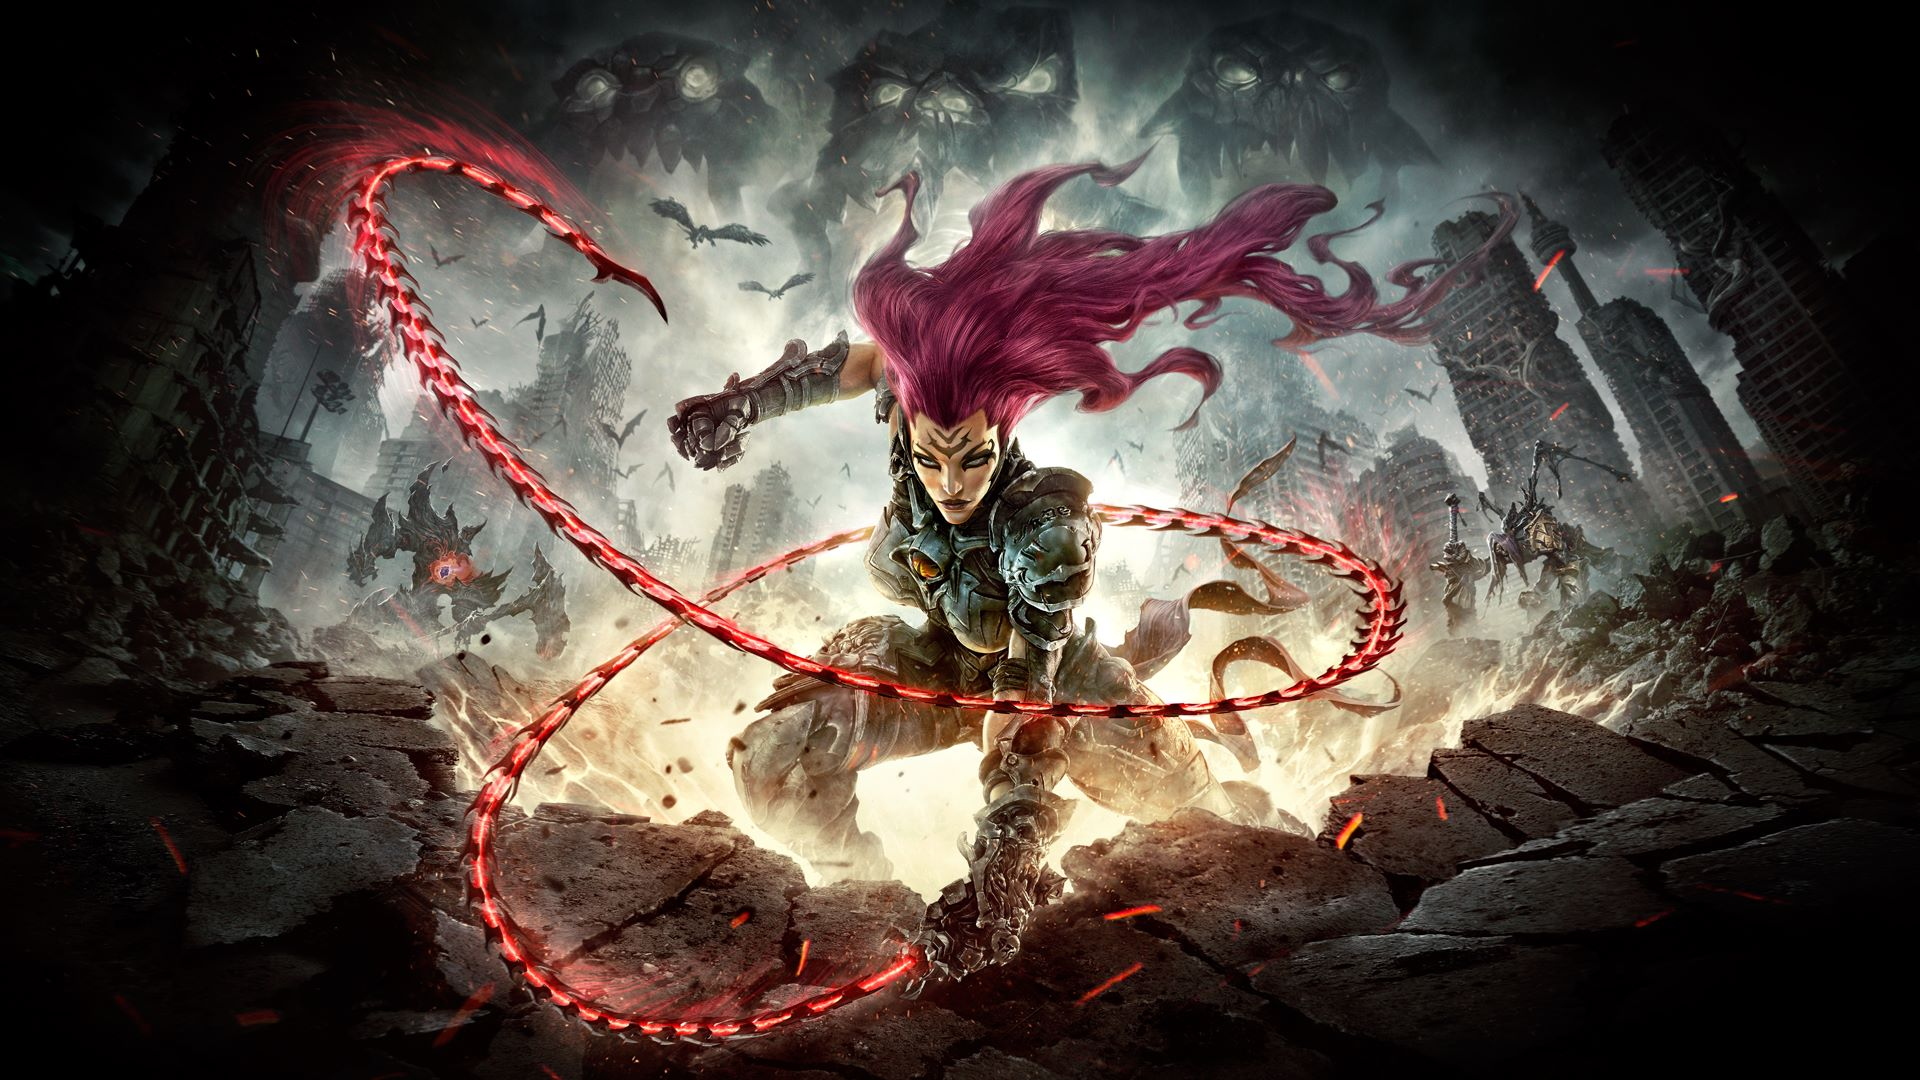 Darksiders III - Blades & Whip Edition